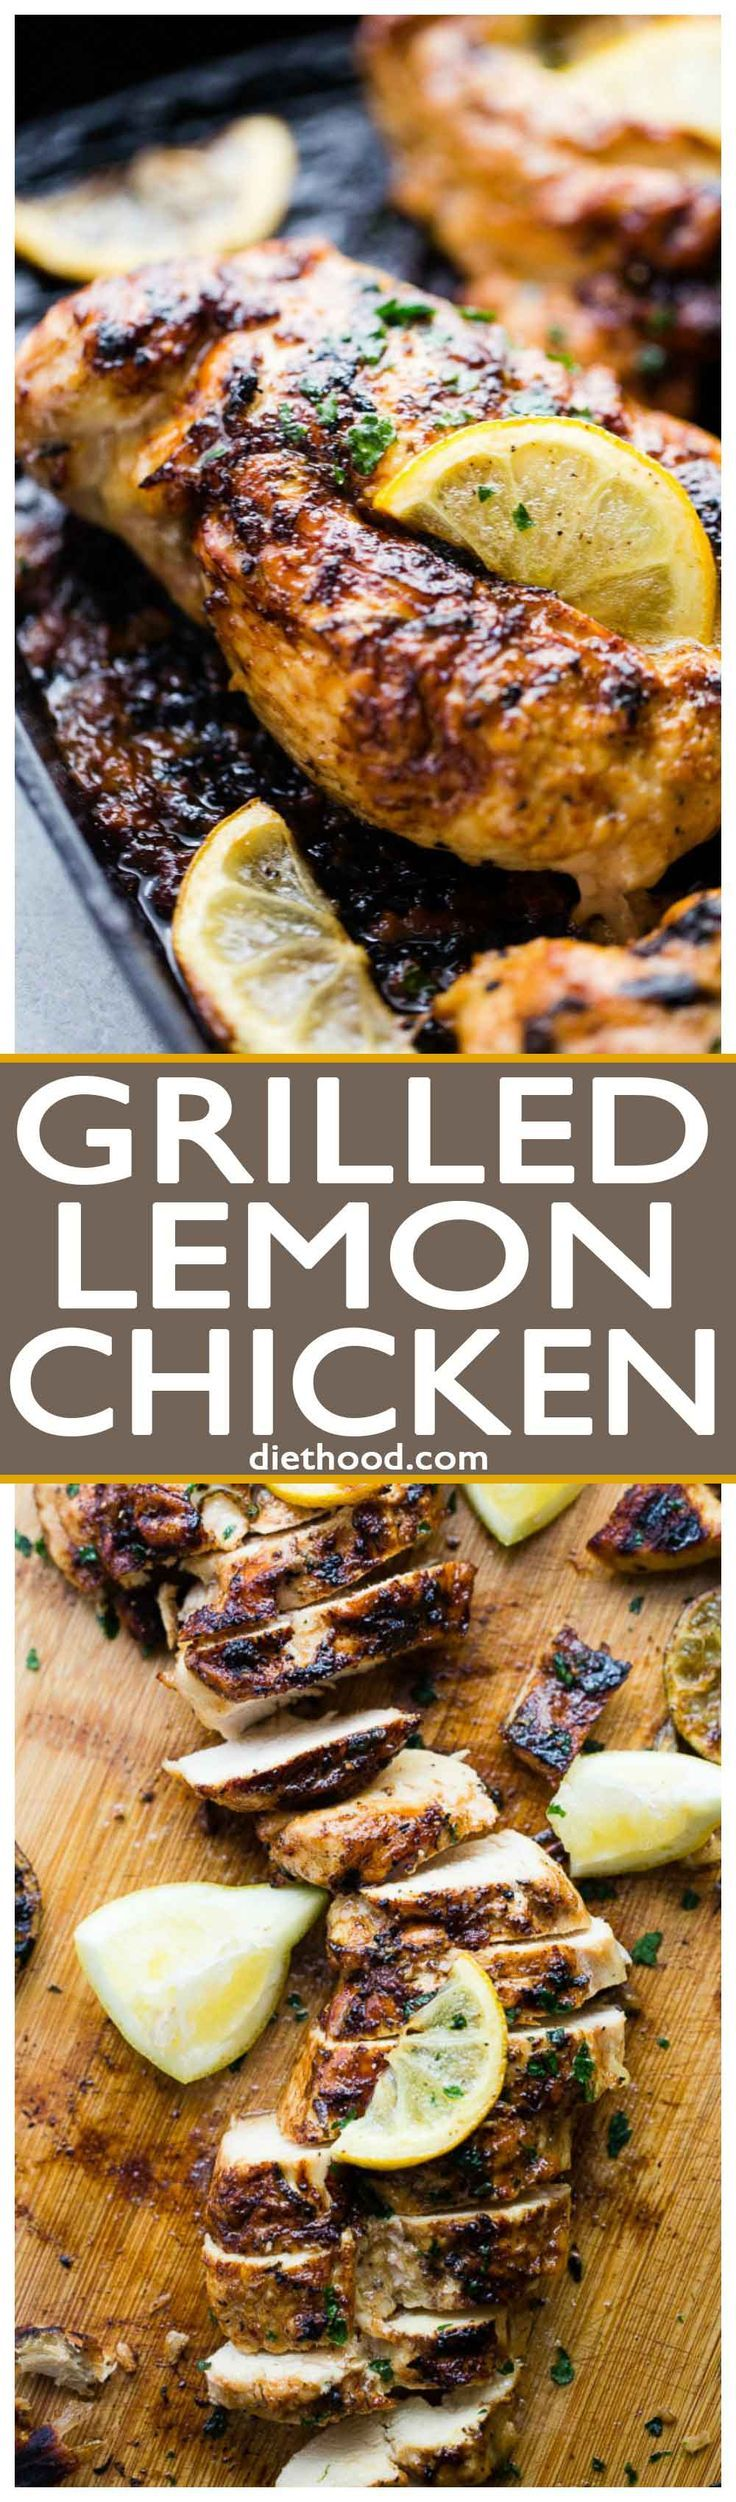 The Best Grilled Lemon Chicken Recipe - Perfectly tender, juicy, healthy lemon chicken marinated in a delicious lemon mixture, and prepared on the grill.